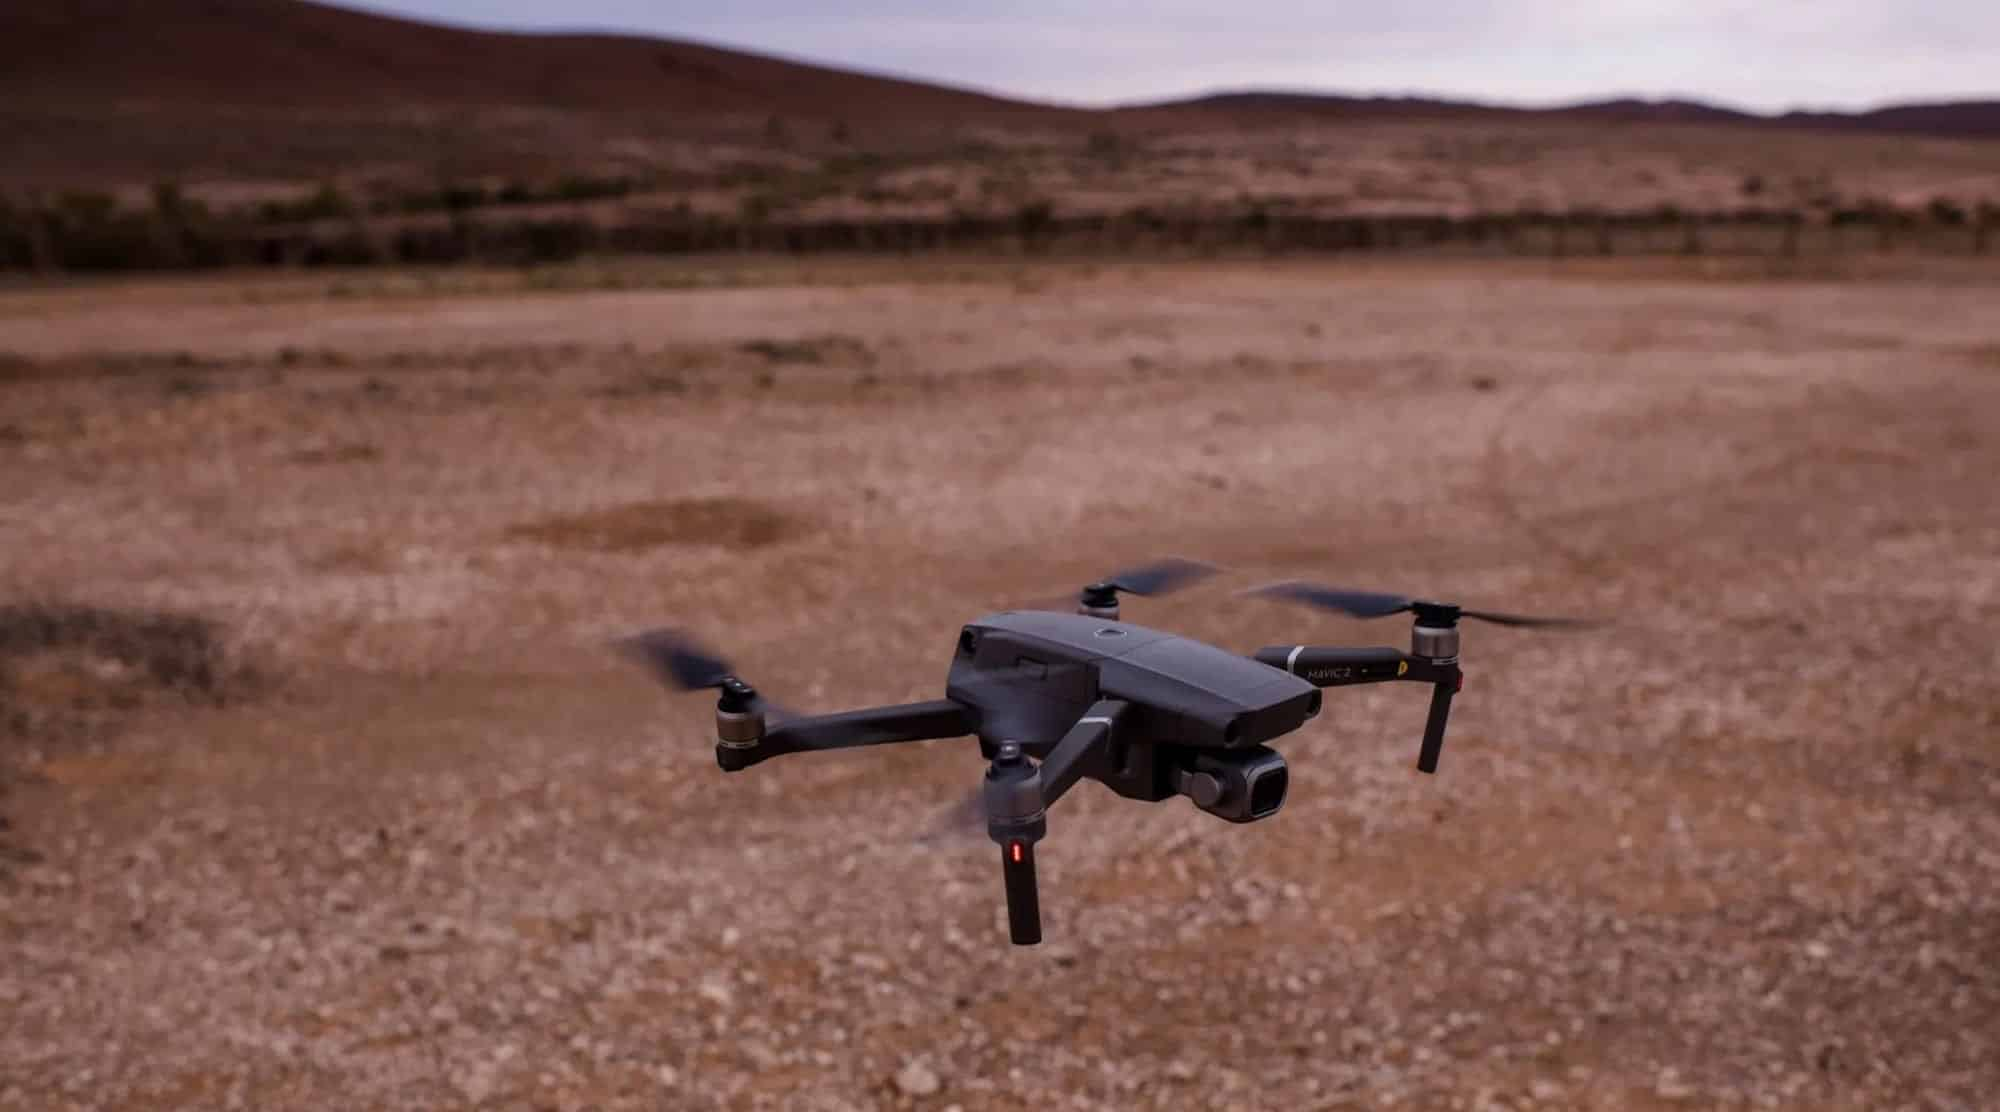 Australian government is 'comfortable' with data security of DJI drones